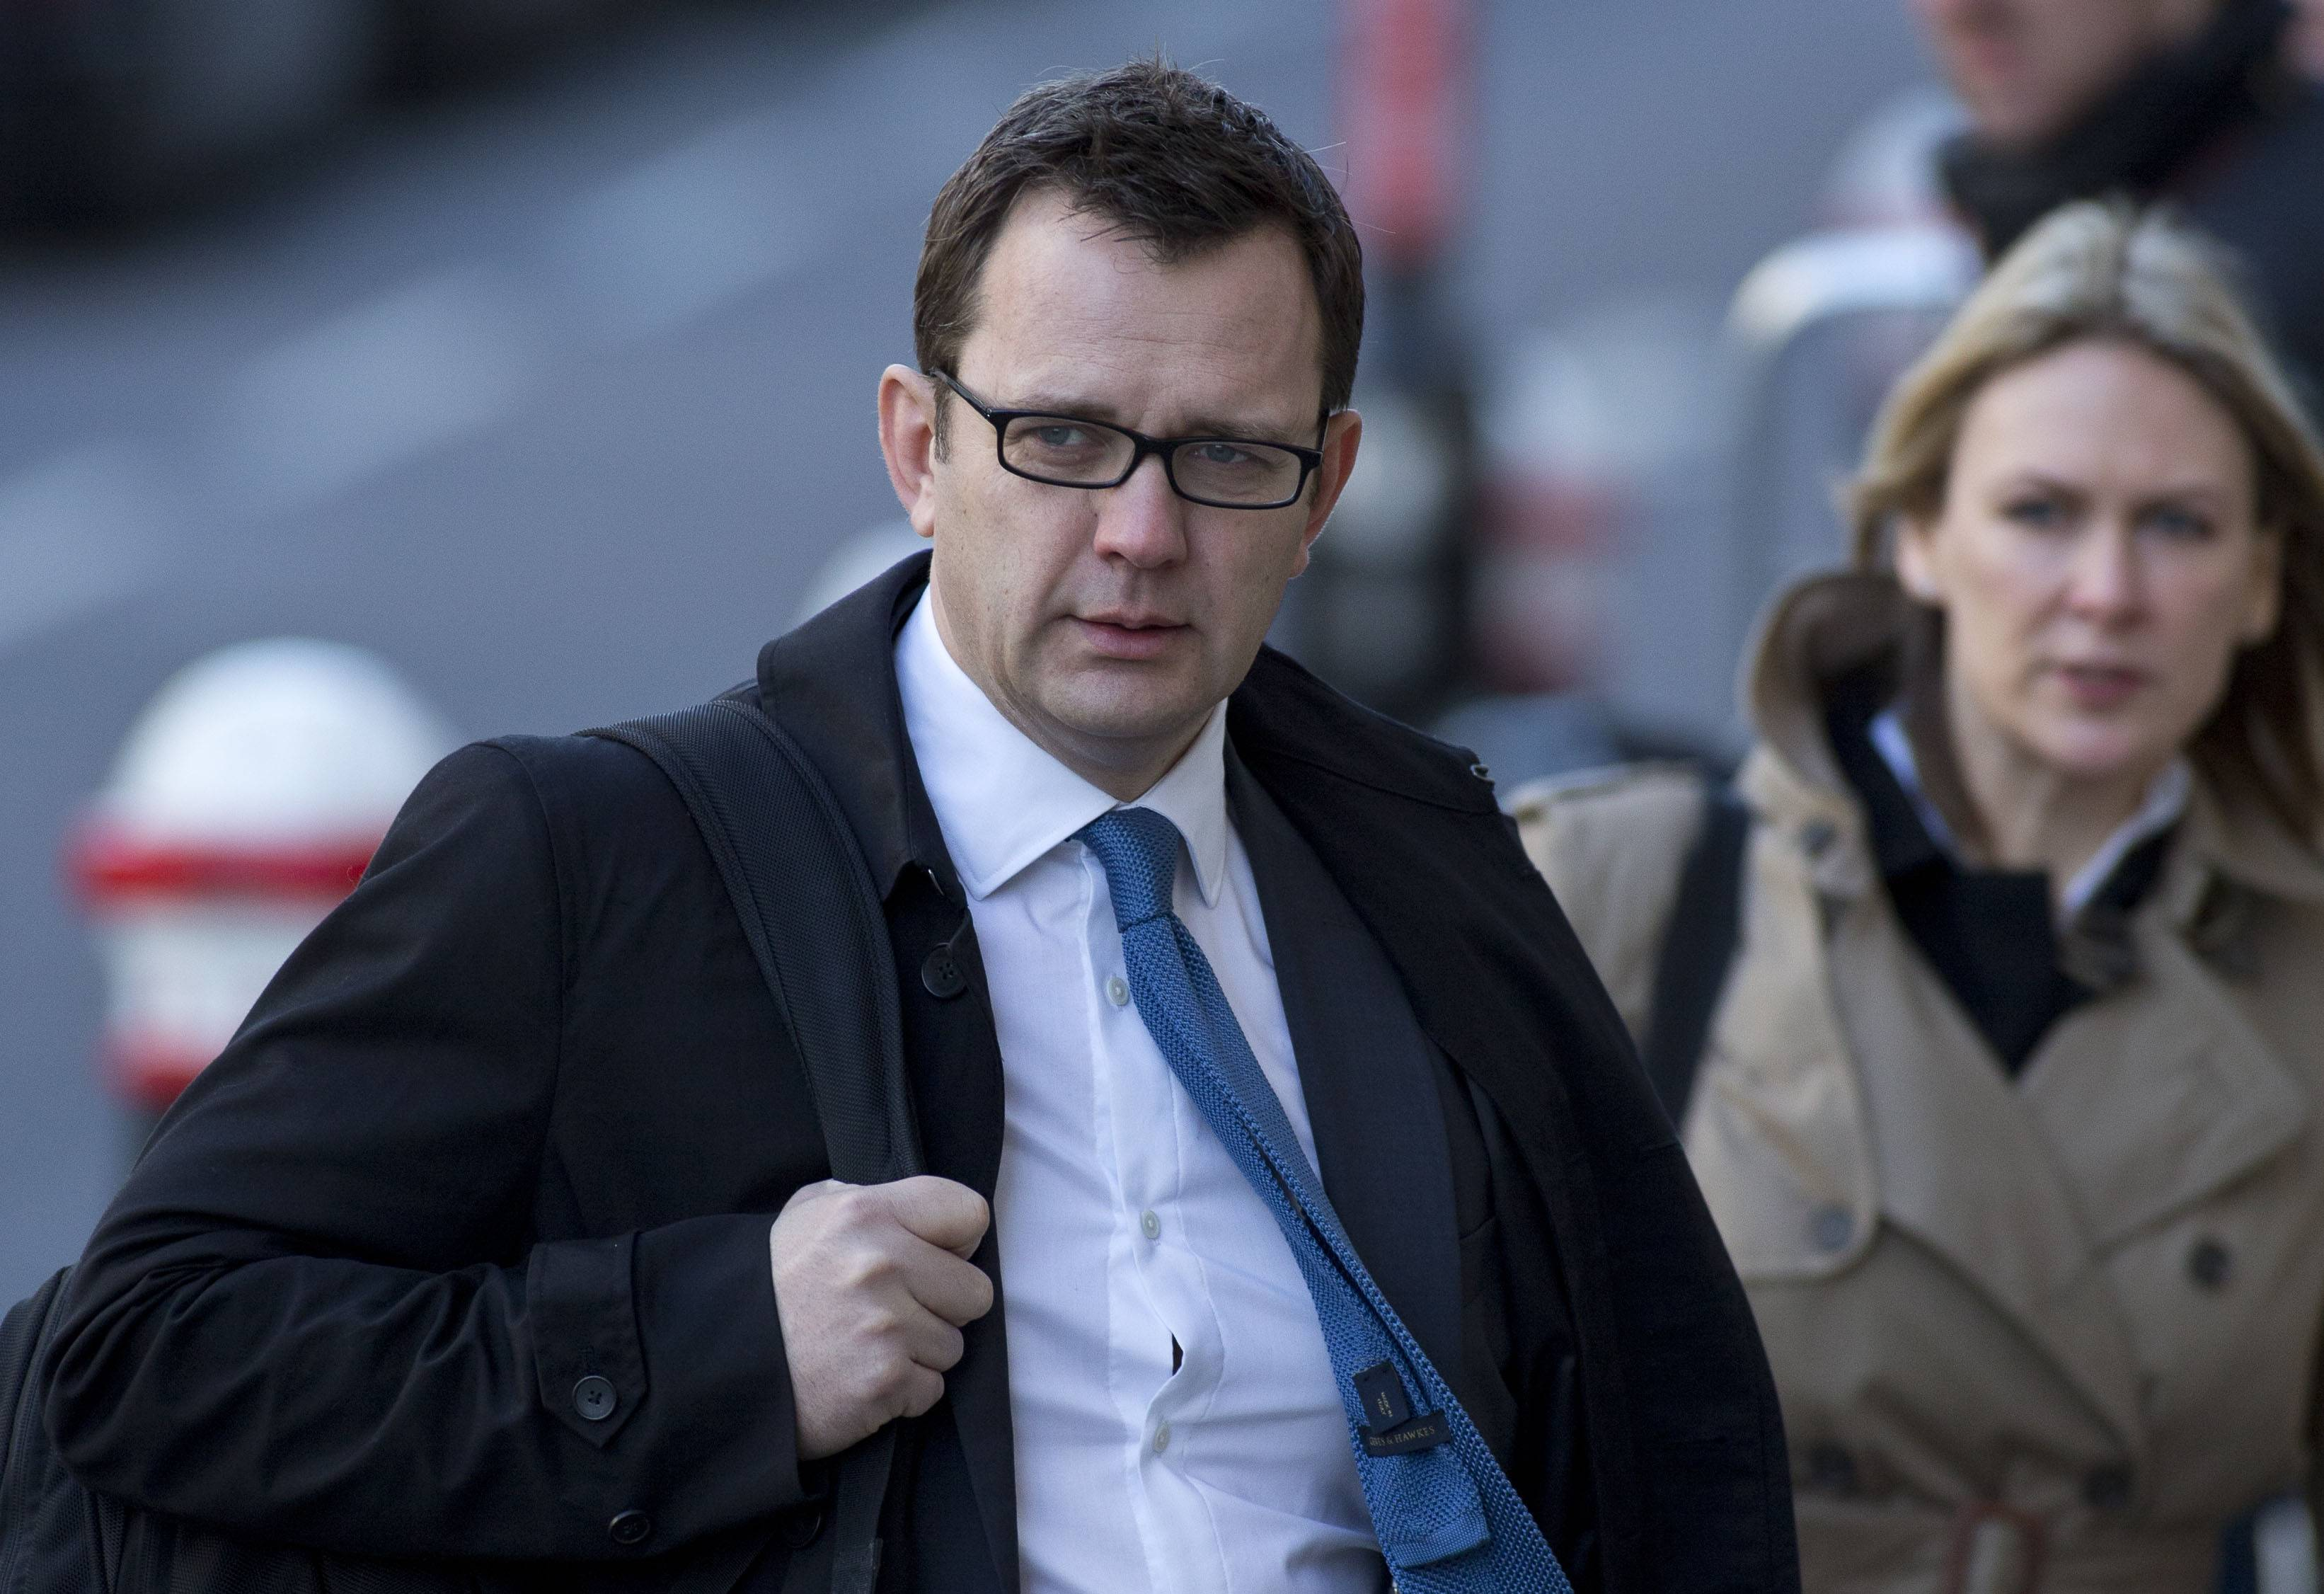 Former News of the World editor Andy Coulson has been convicted Tuesday of phone hacking, but fellow editor Rebekah Brooks was acquitted after a months long trial centring on illegal activity at the heart of Rupert Murdoch's newspaper empire.